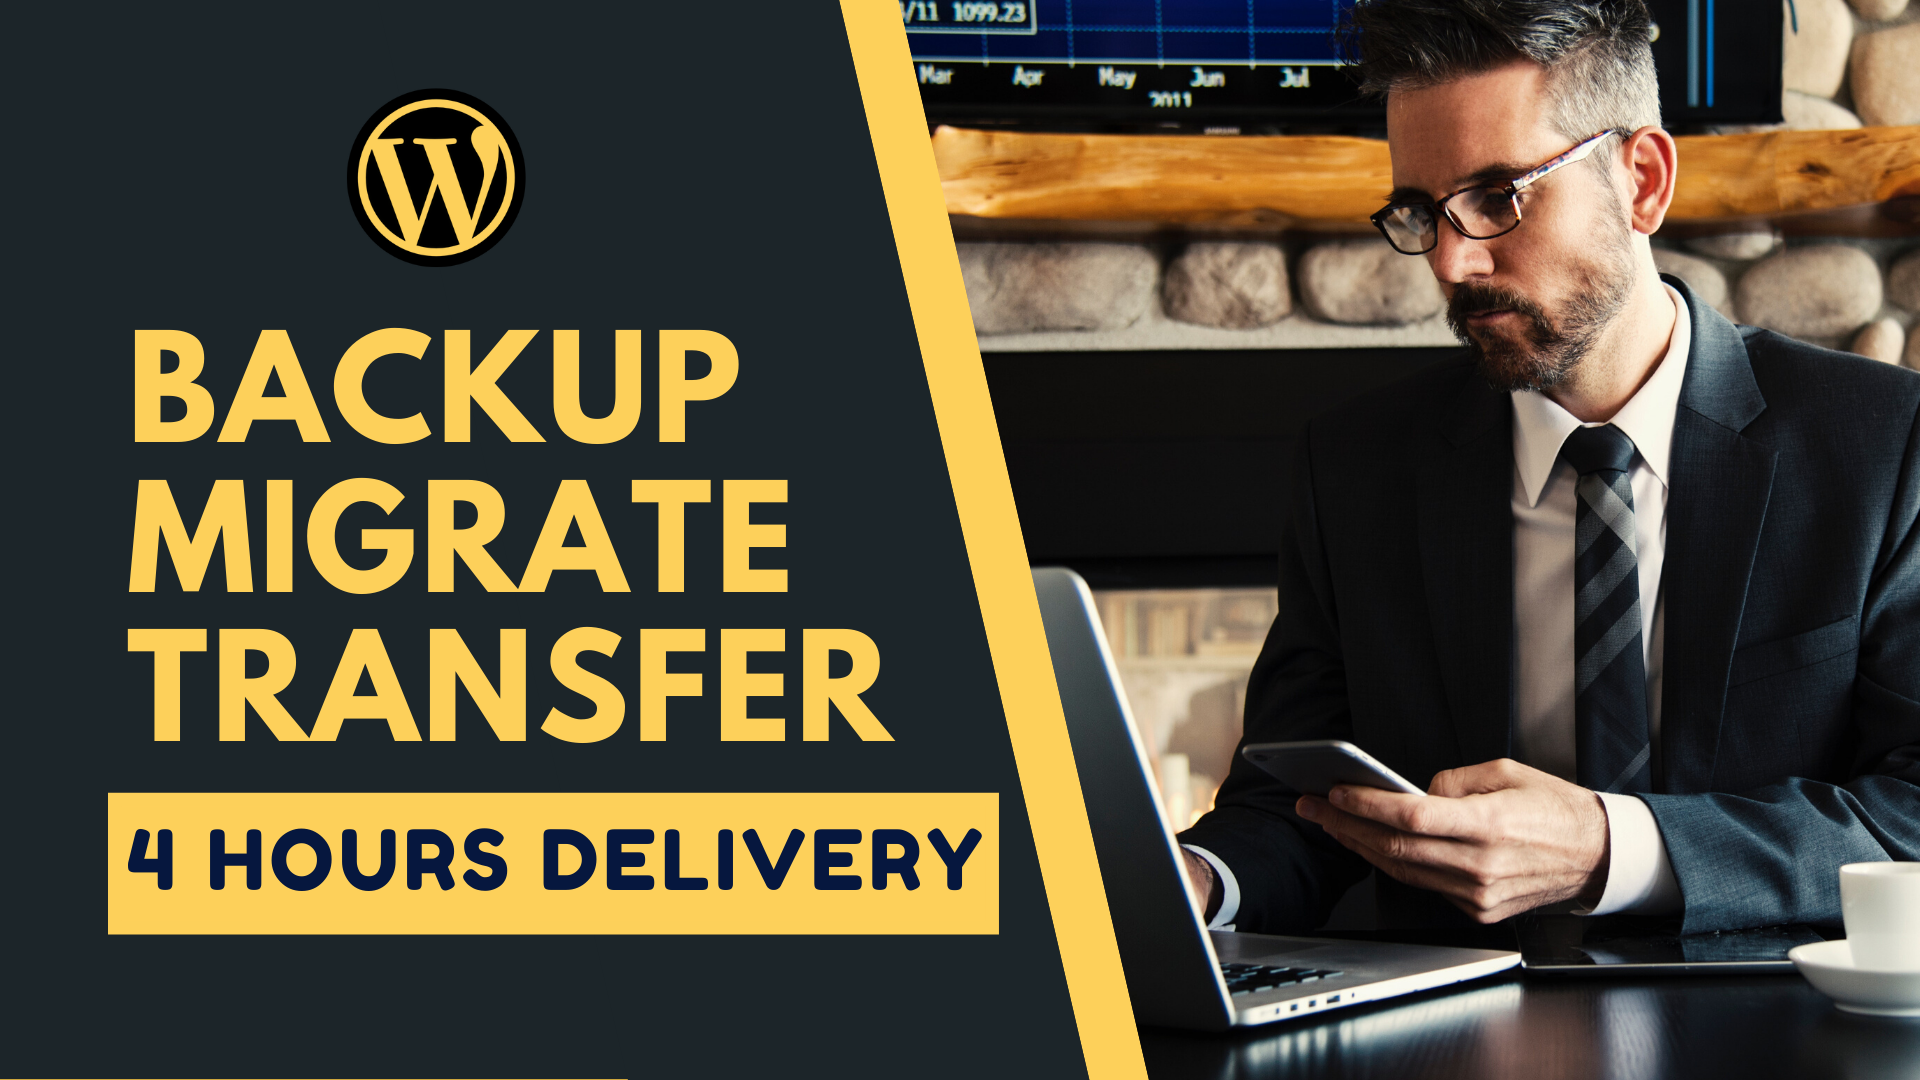 I will Backup,  migrate,  transfer your wordpress website in 4 Hours.